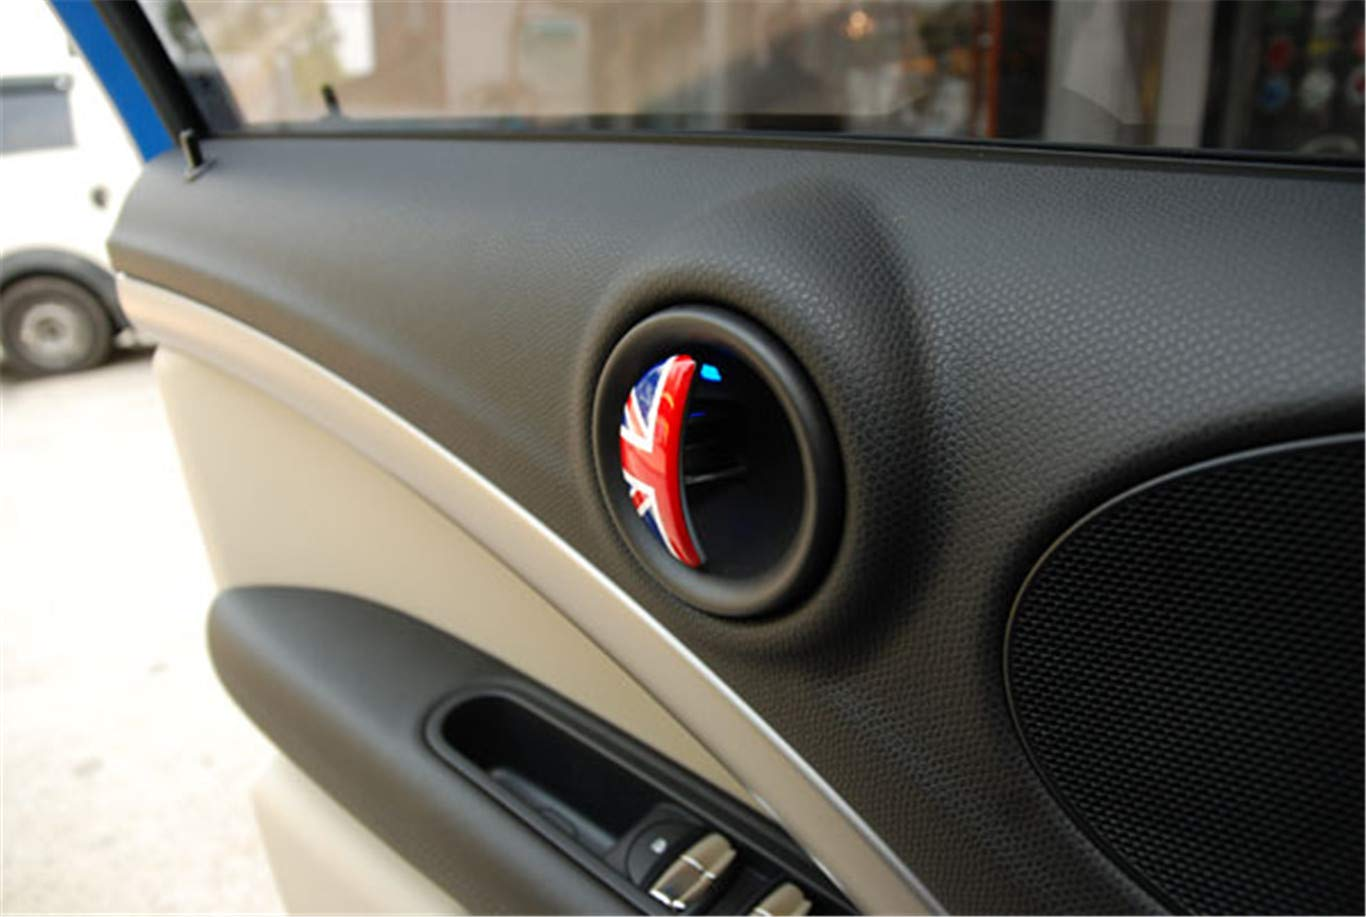 Red//Blue Union Jack UK Flag ABS Sticker Cover Trim Cap for Mini Cooper ONE S JCW R Series R60 Countryman R61 Paceman 2010-2016 Door Handle with Key Hole 4 Pieces